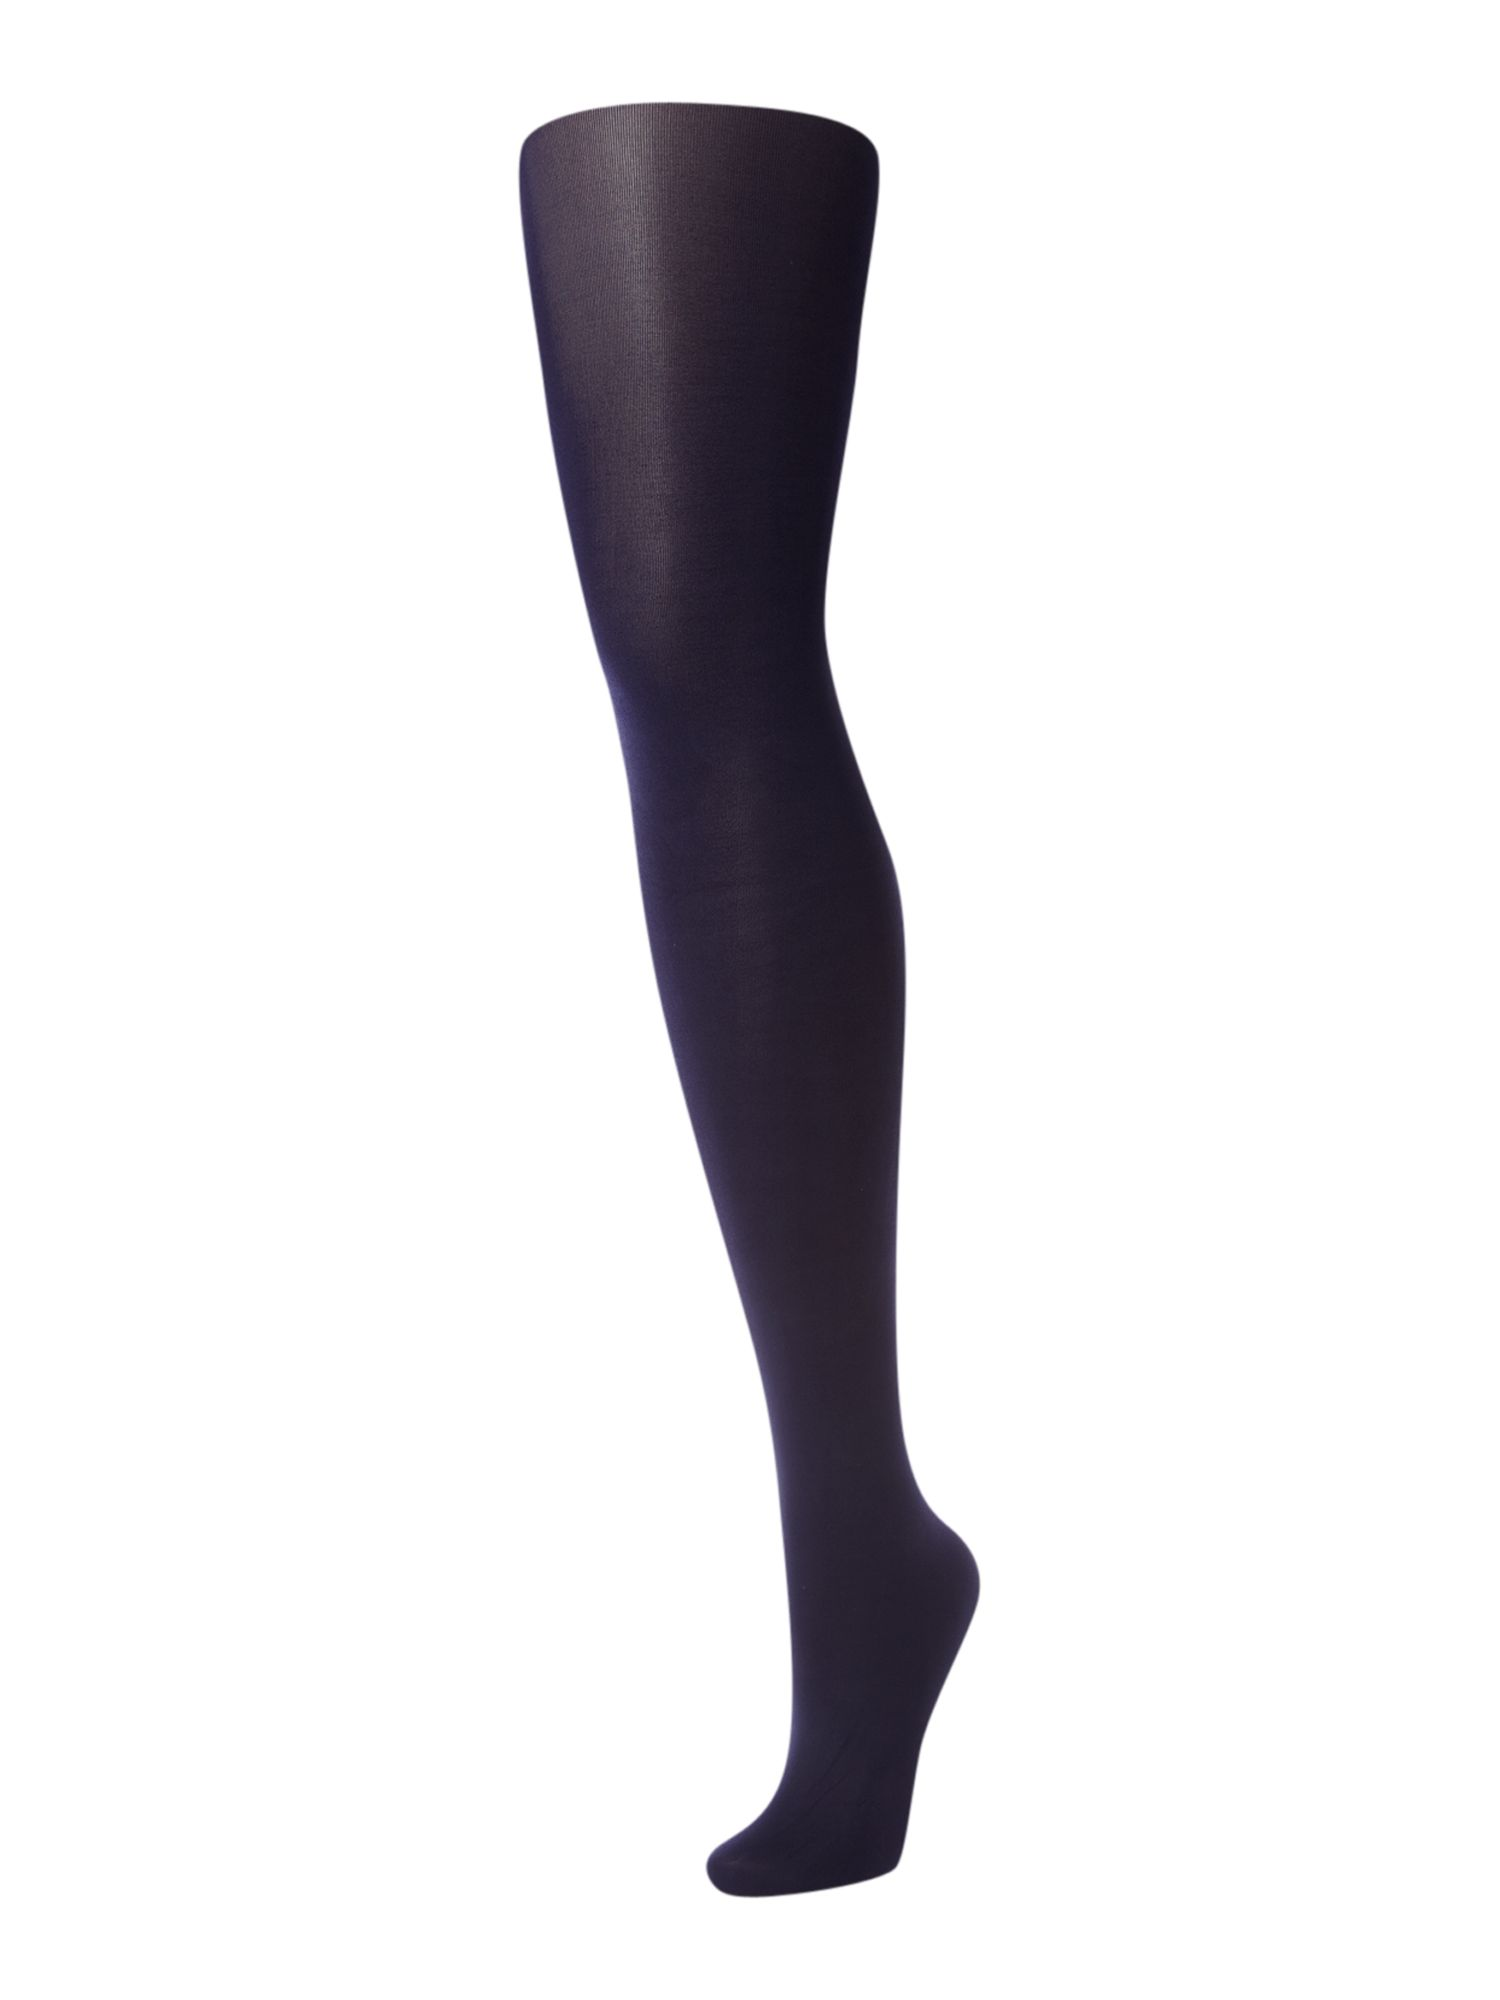 80 denier satin touch tights